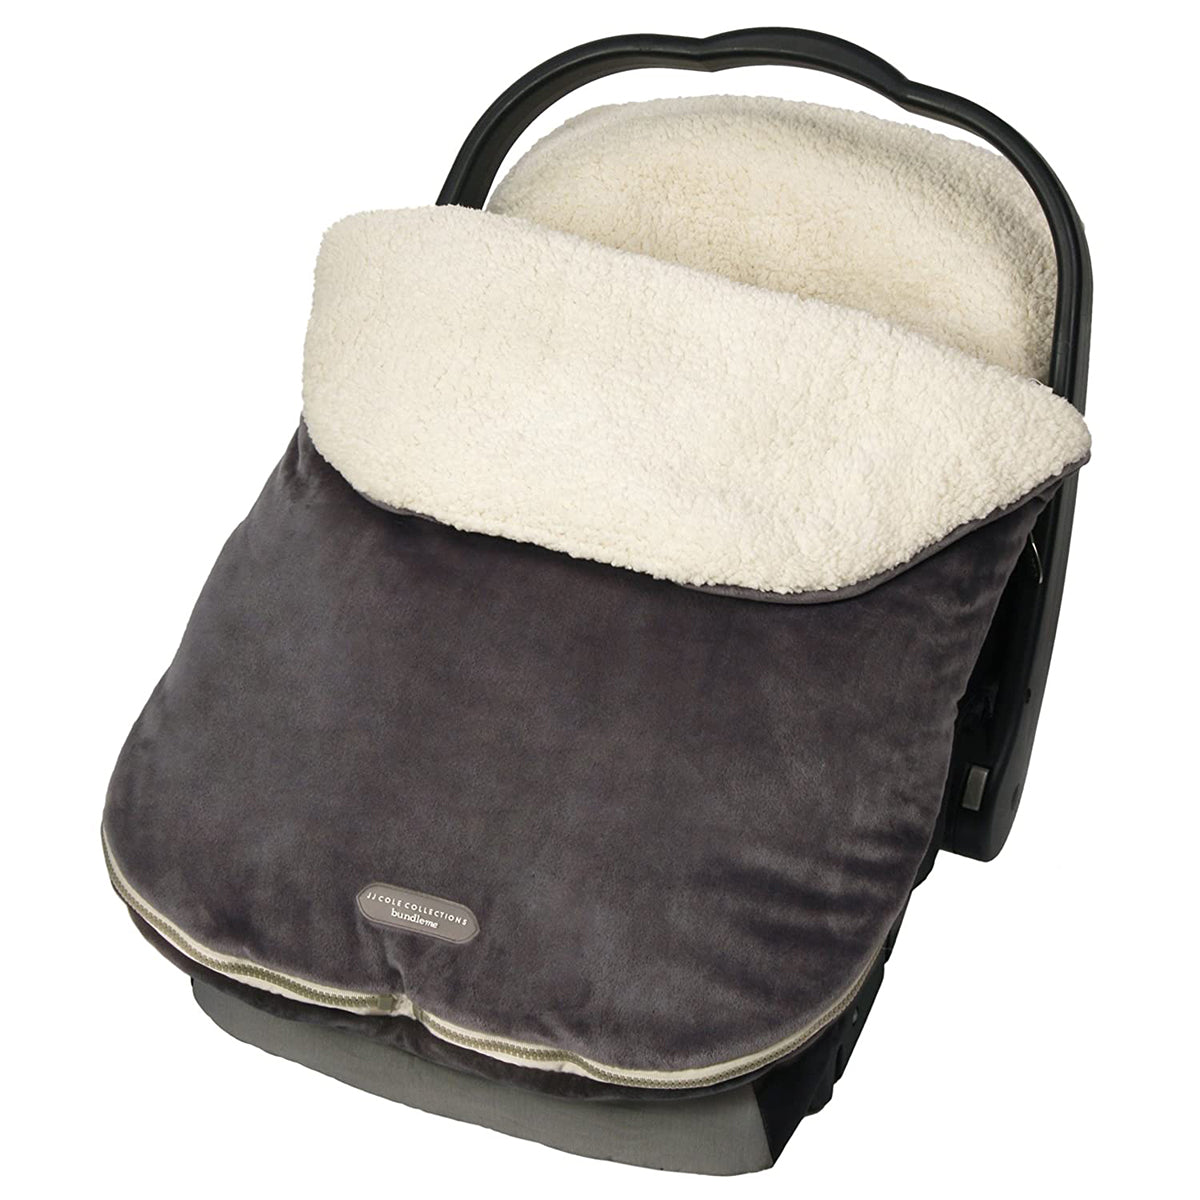 Stroller seat cover